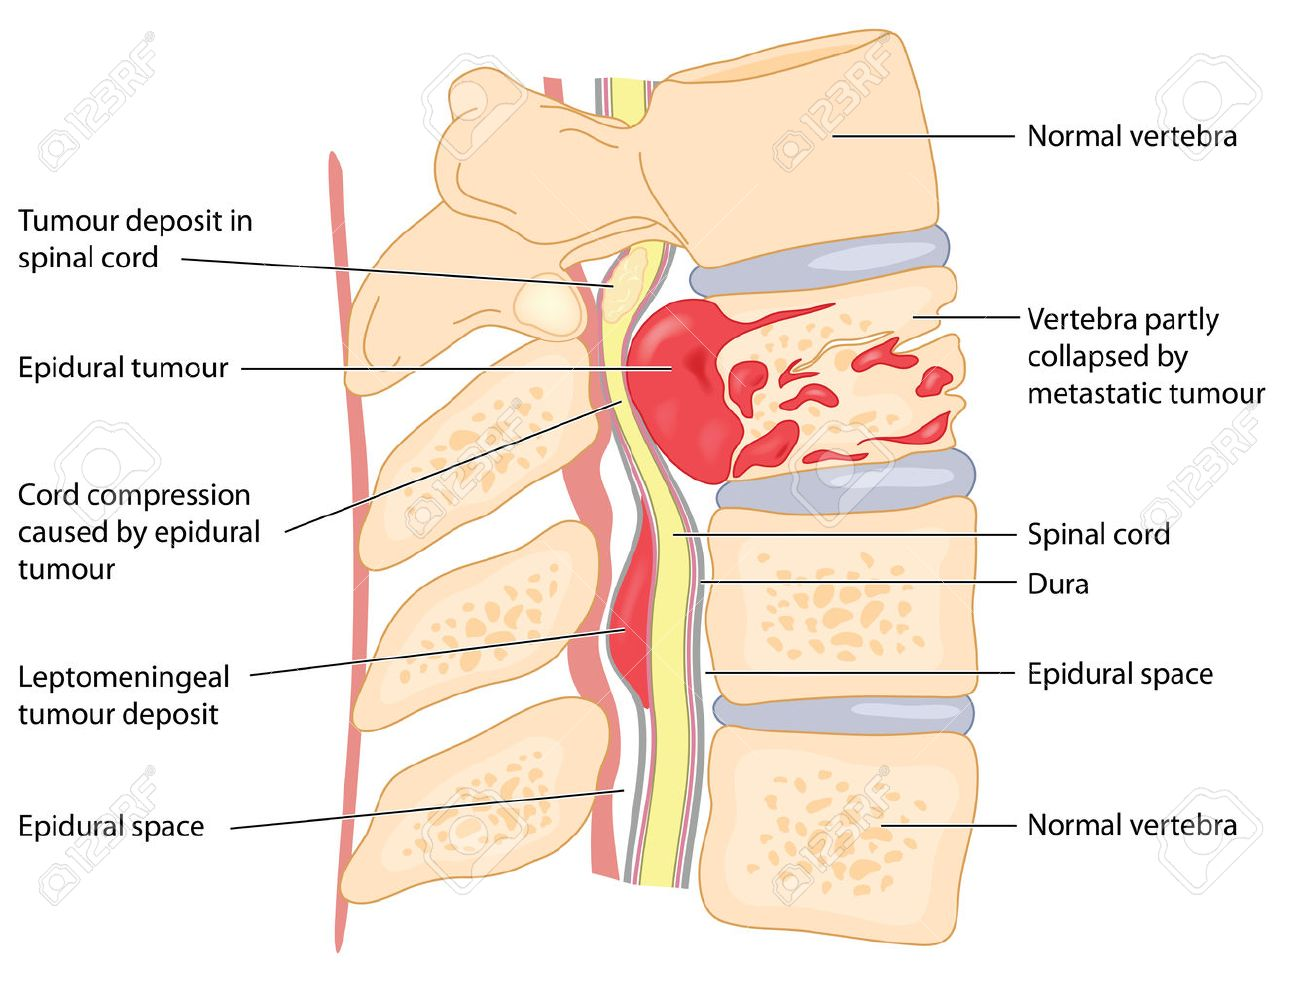 Primary and secondary tumours of the vertebrae and spinal cord primary and secondary tumours of the vertebrae and spinal cord showing cord compression and collapsed ccuart Choice Image